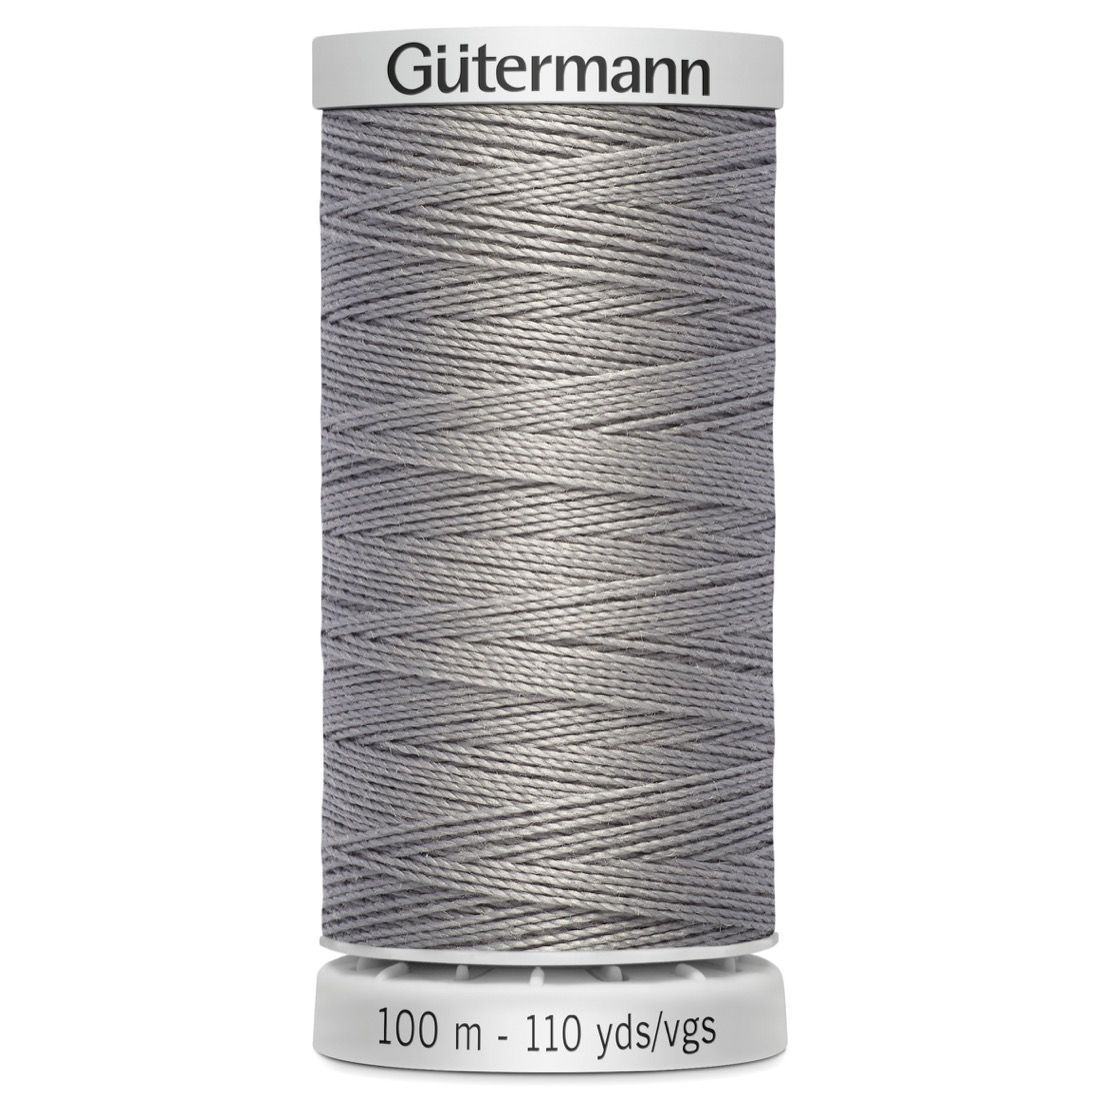 Gutermann Extra Strong Upholstery Thread - 100m - 40